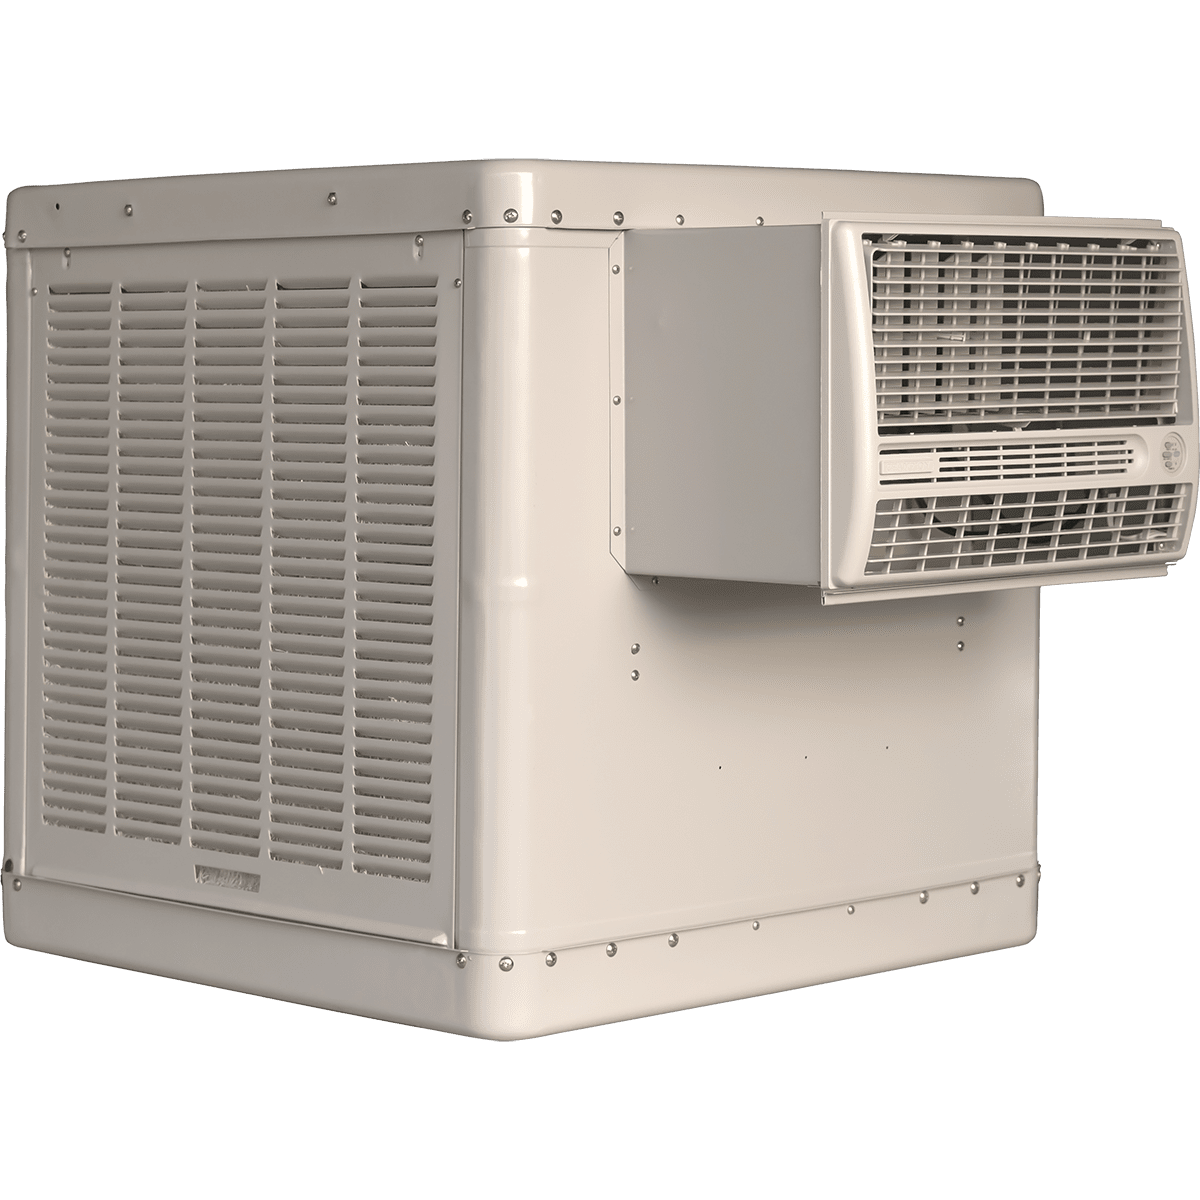 Window Air Cooler : Essick air rn w window cooler free shipping sylvane